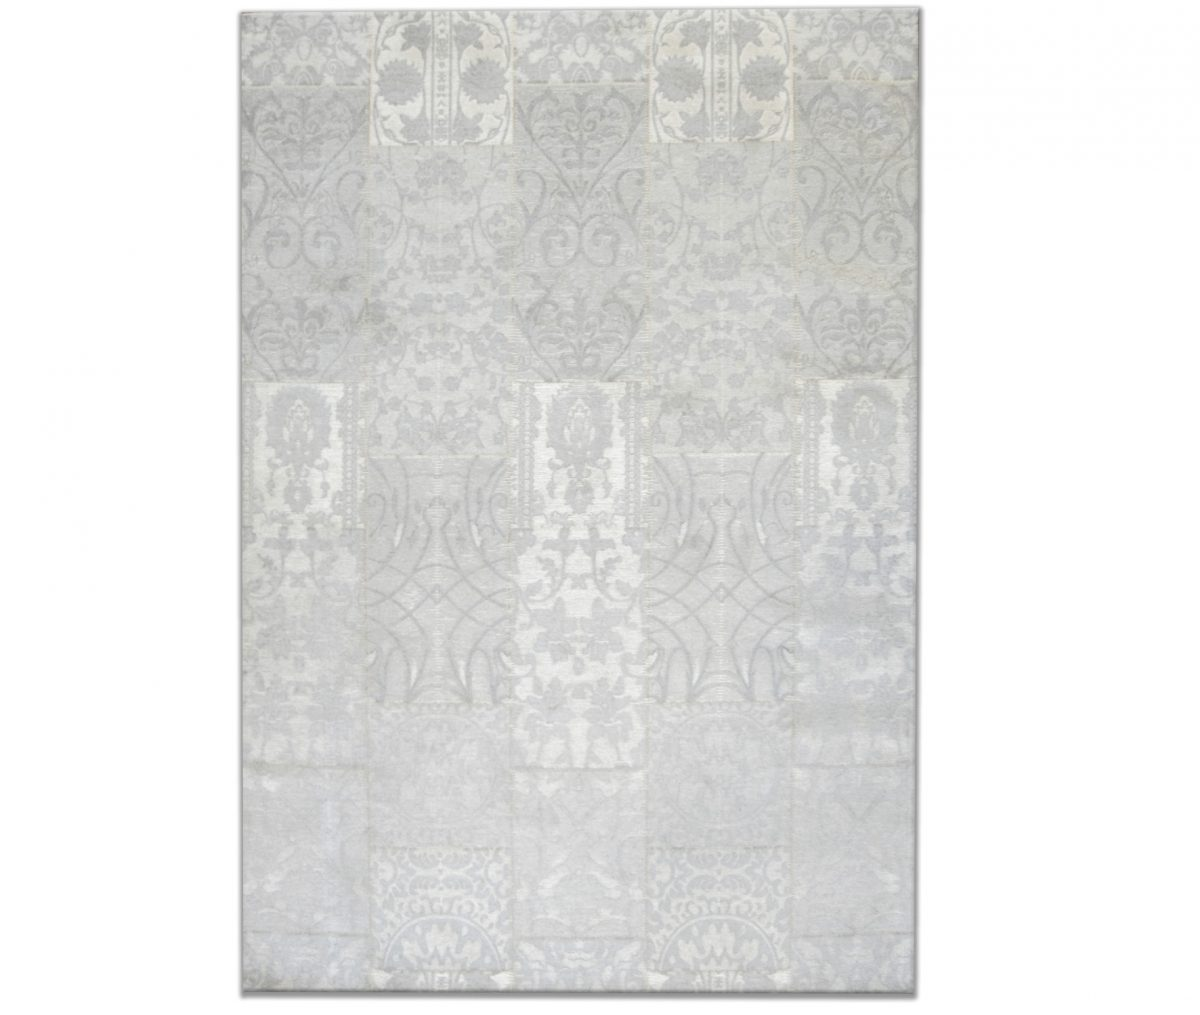 47487,160230,52-Seattle-Carpet-160x230cm-52-Smoke